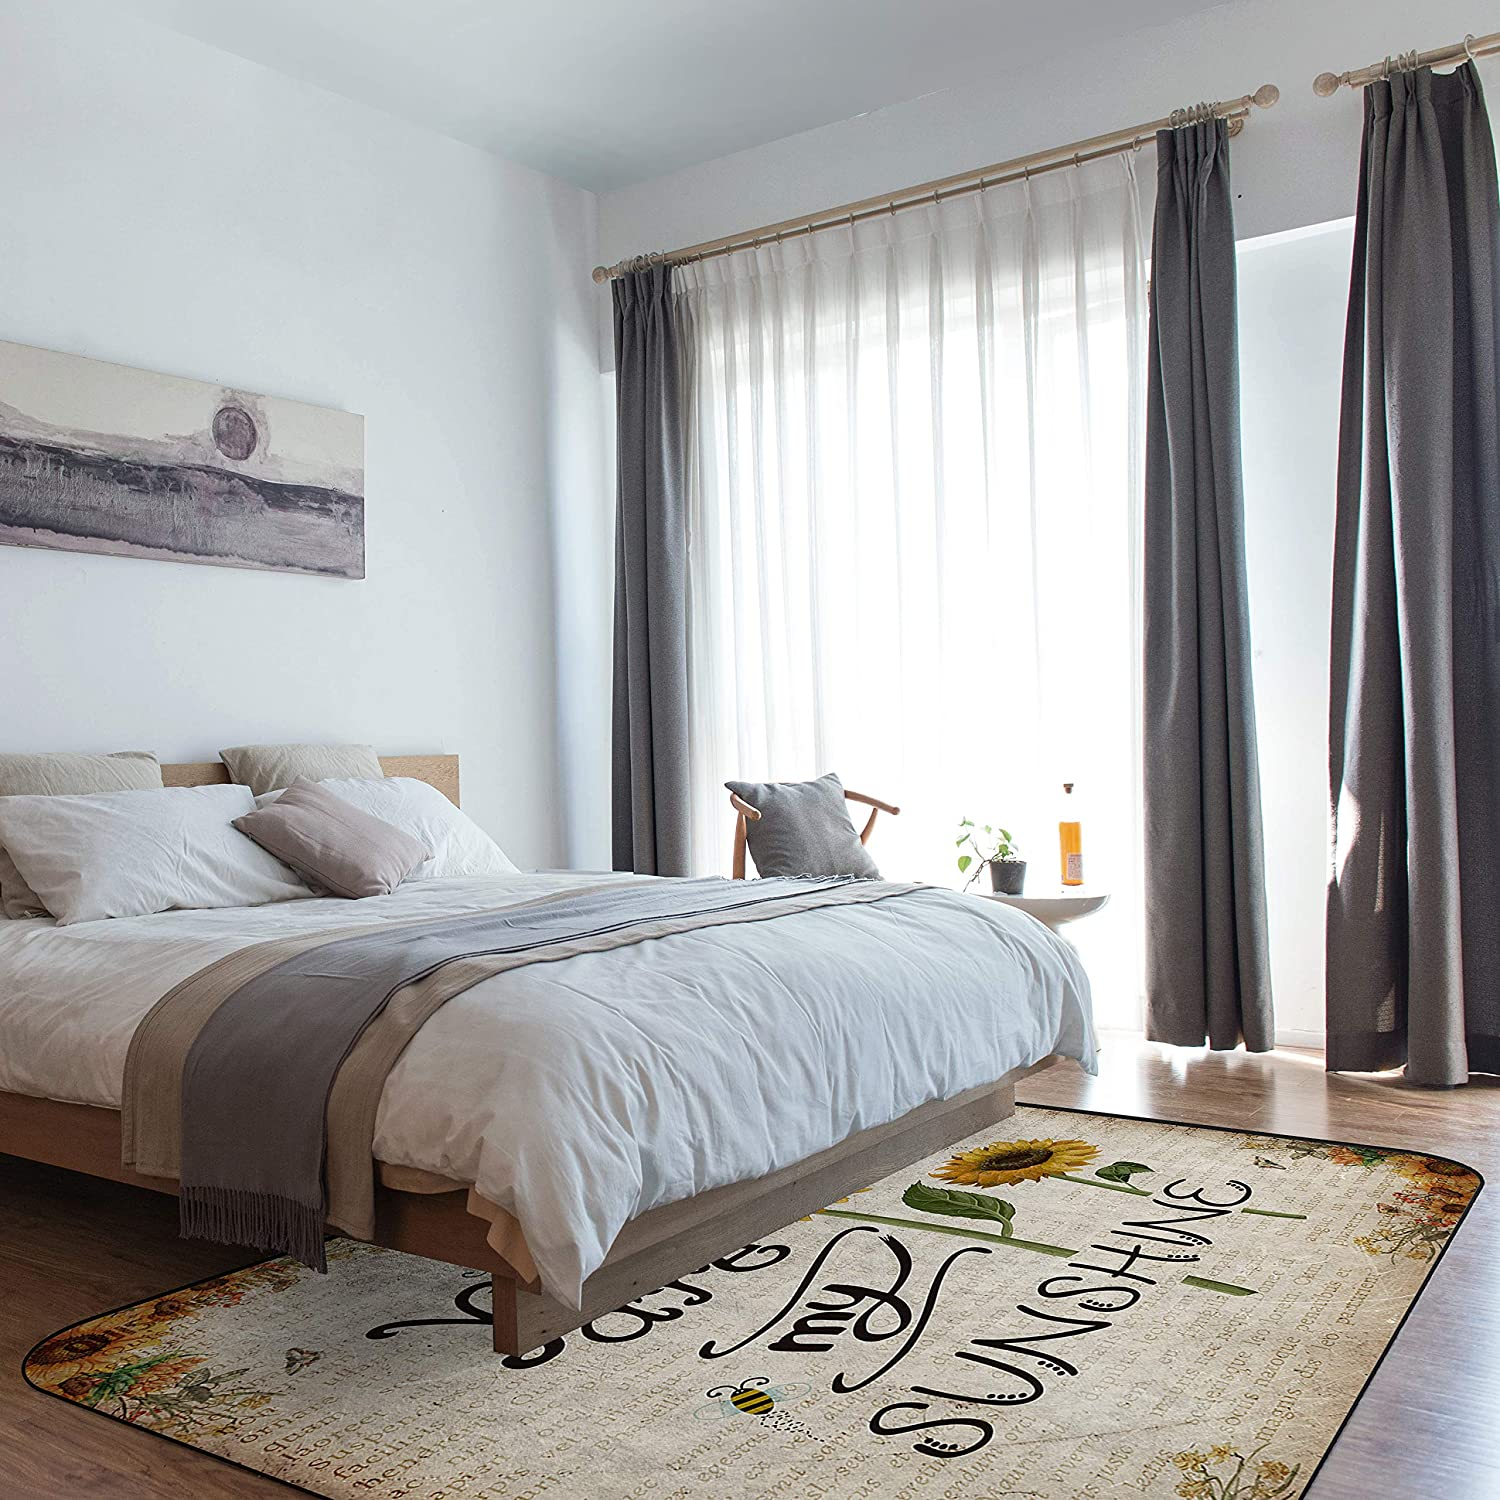 Untra Soft Large Area Rug for are Bedroom Sunflo Minneapolis Seattle Mall Mall My Sunshine You